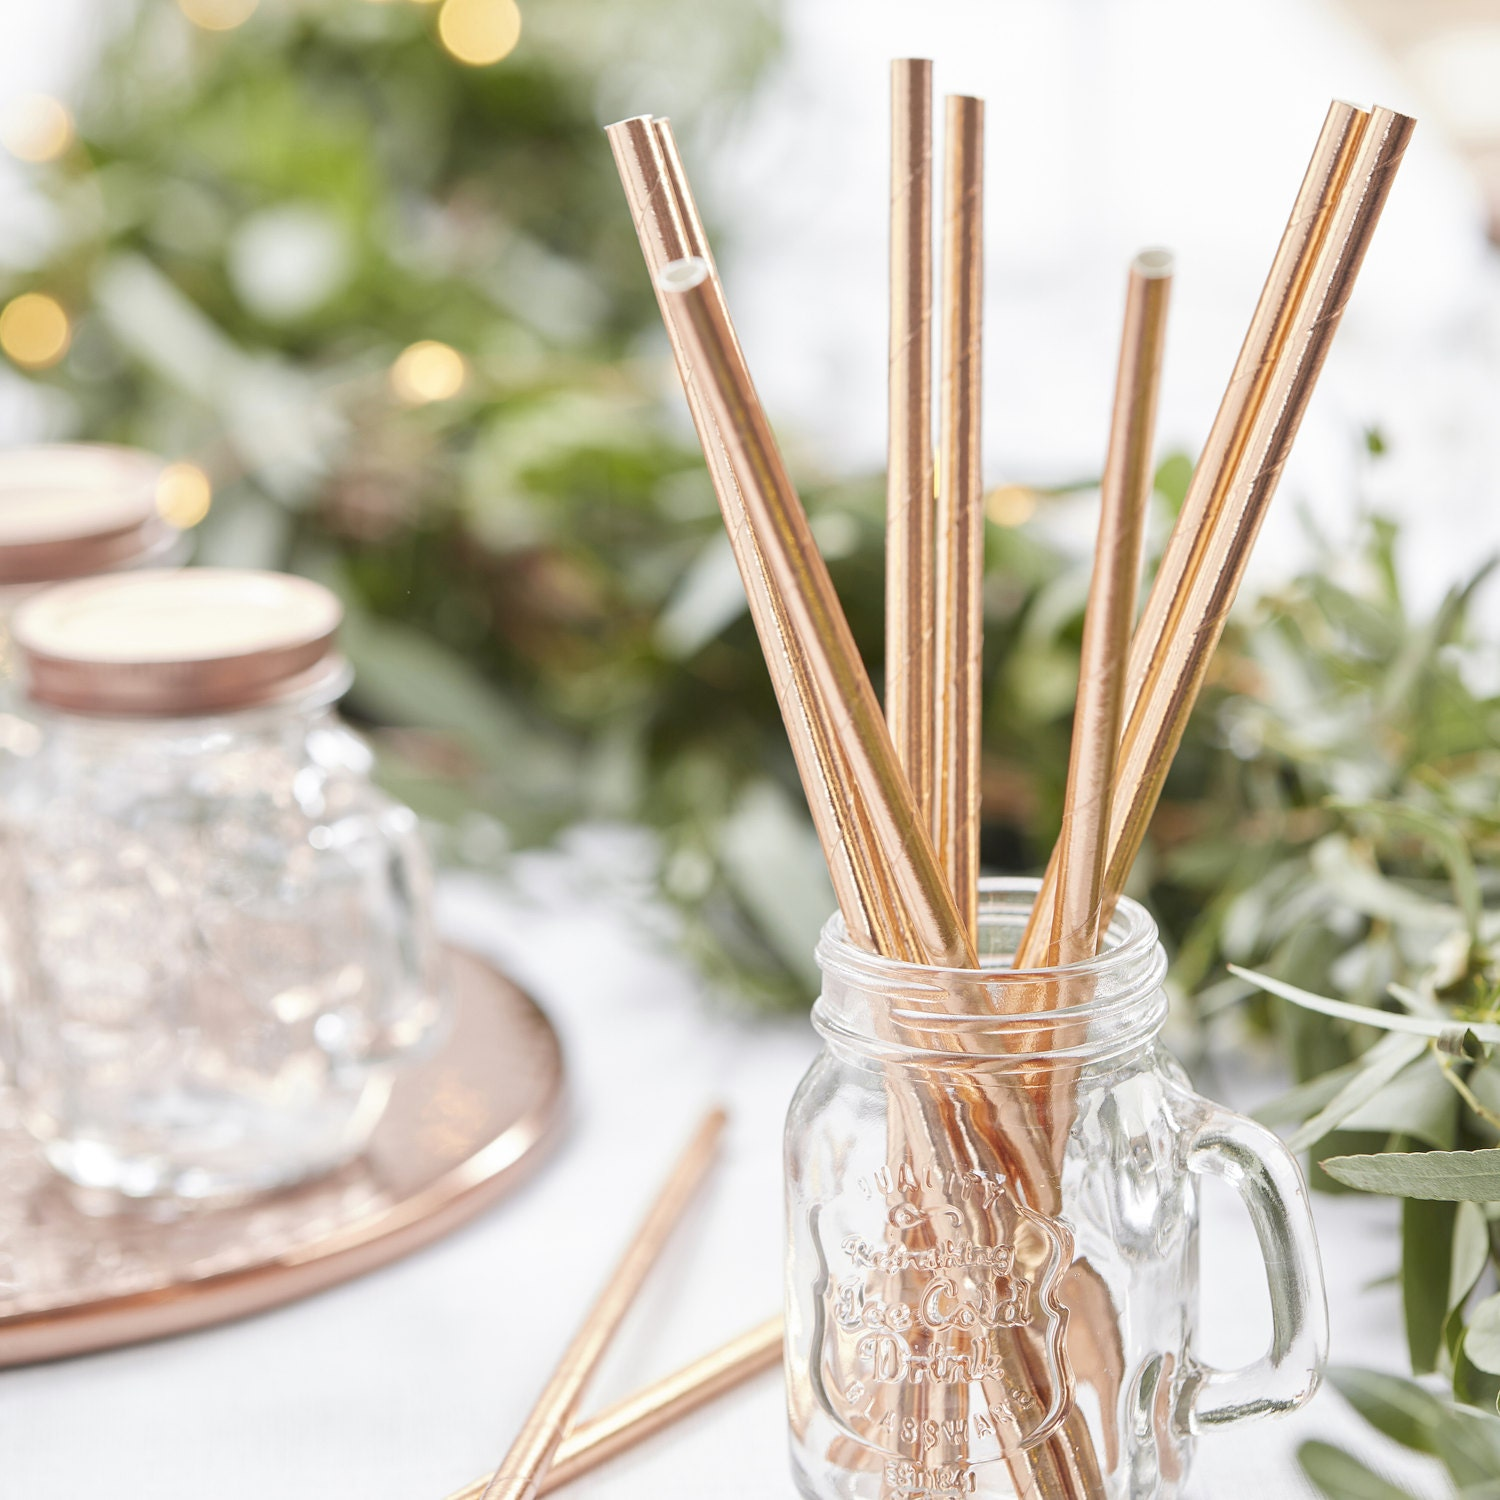 Rose Gold Paper Straws, Beautiful Gold Straws for Wedding or Birthday Celebration, Rose Gold Straws, Gold, Paper Straws, Wedding Straws